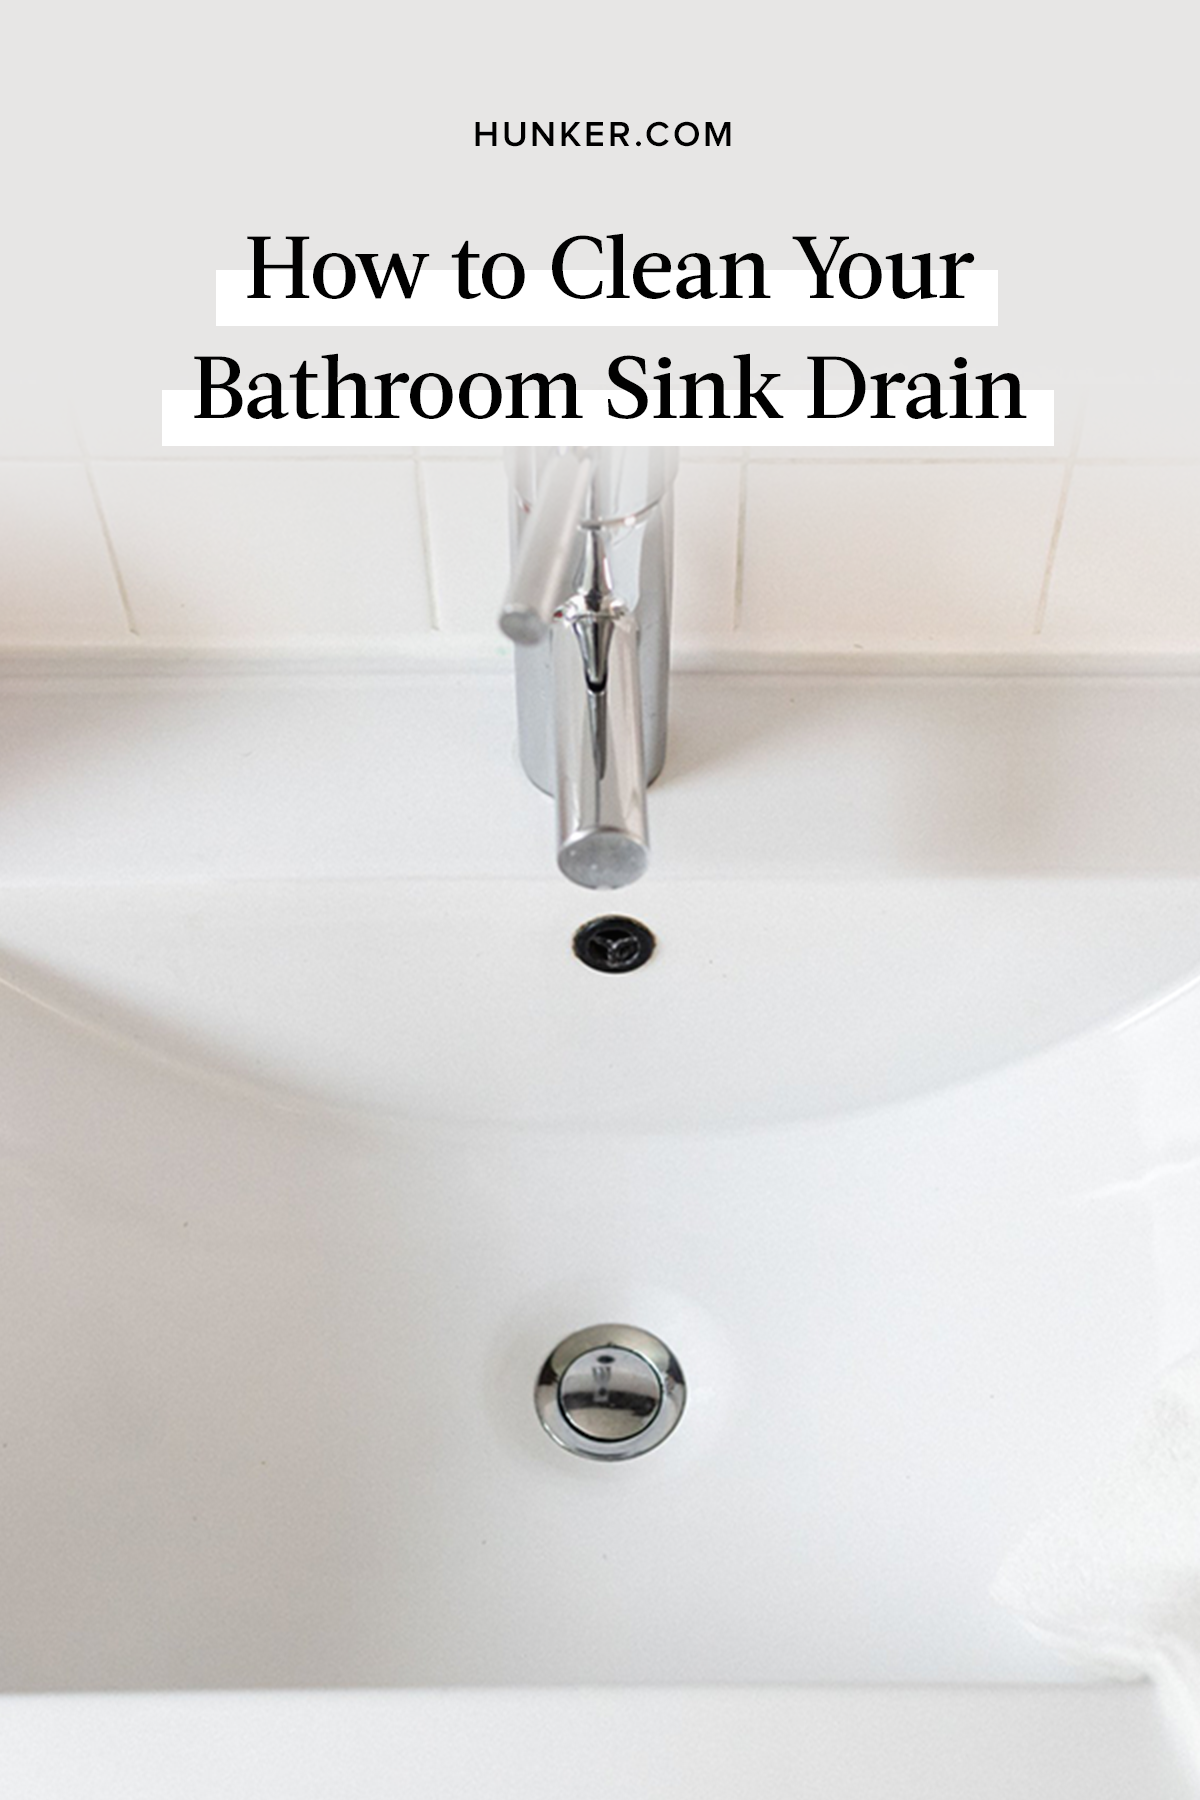 Got A Smelly Bathroom Sink Drain Here S How To Clean Cleaning And Unclogging Your Bathroom Sink And Bathtub Shower Drai Bathroom Sink Drain Sink Drain Sink